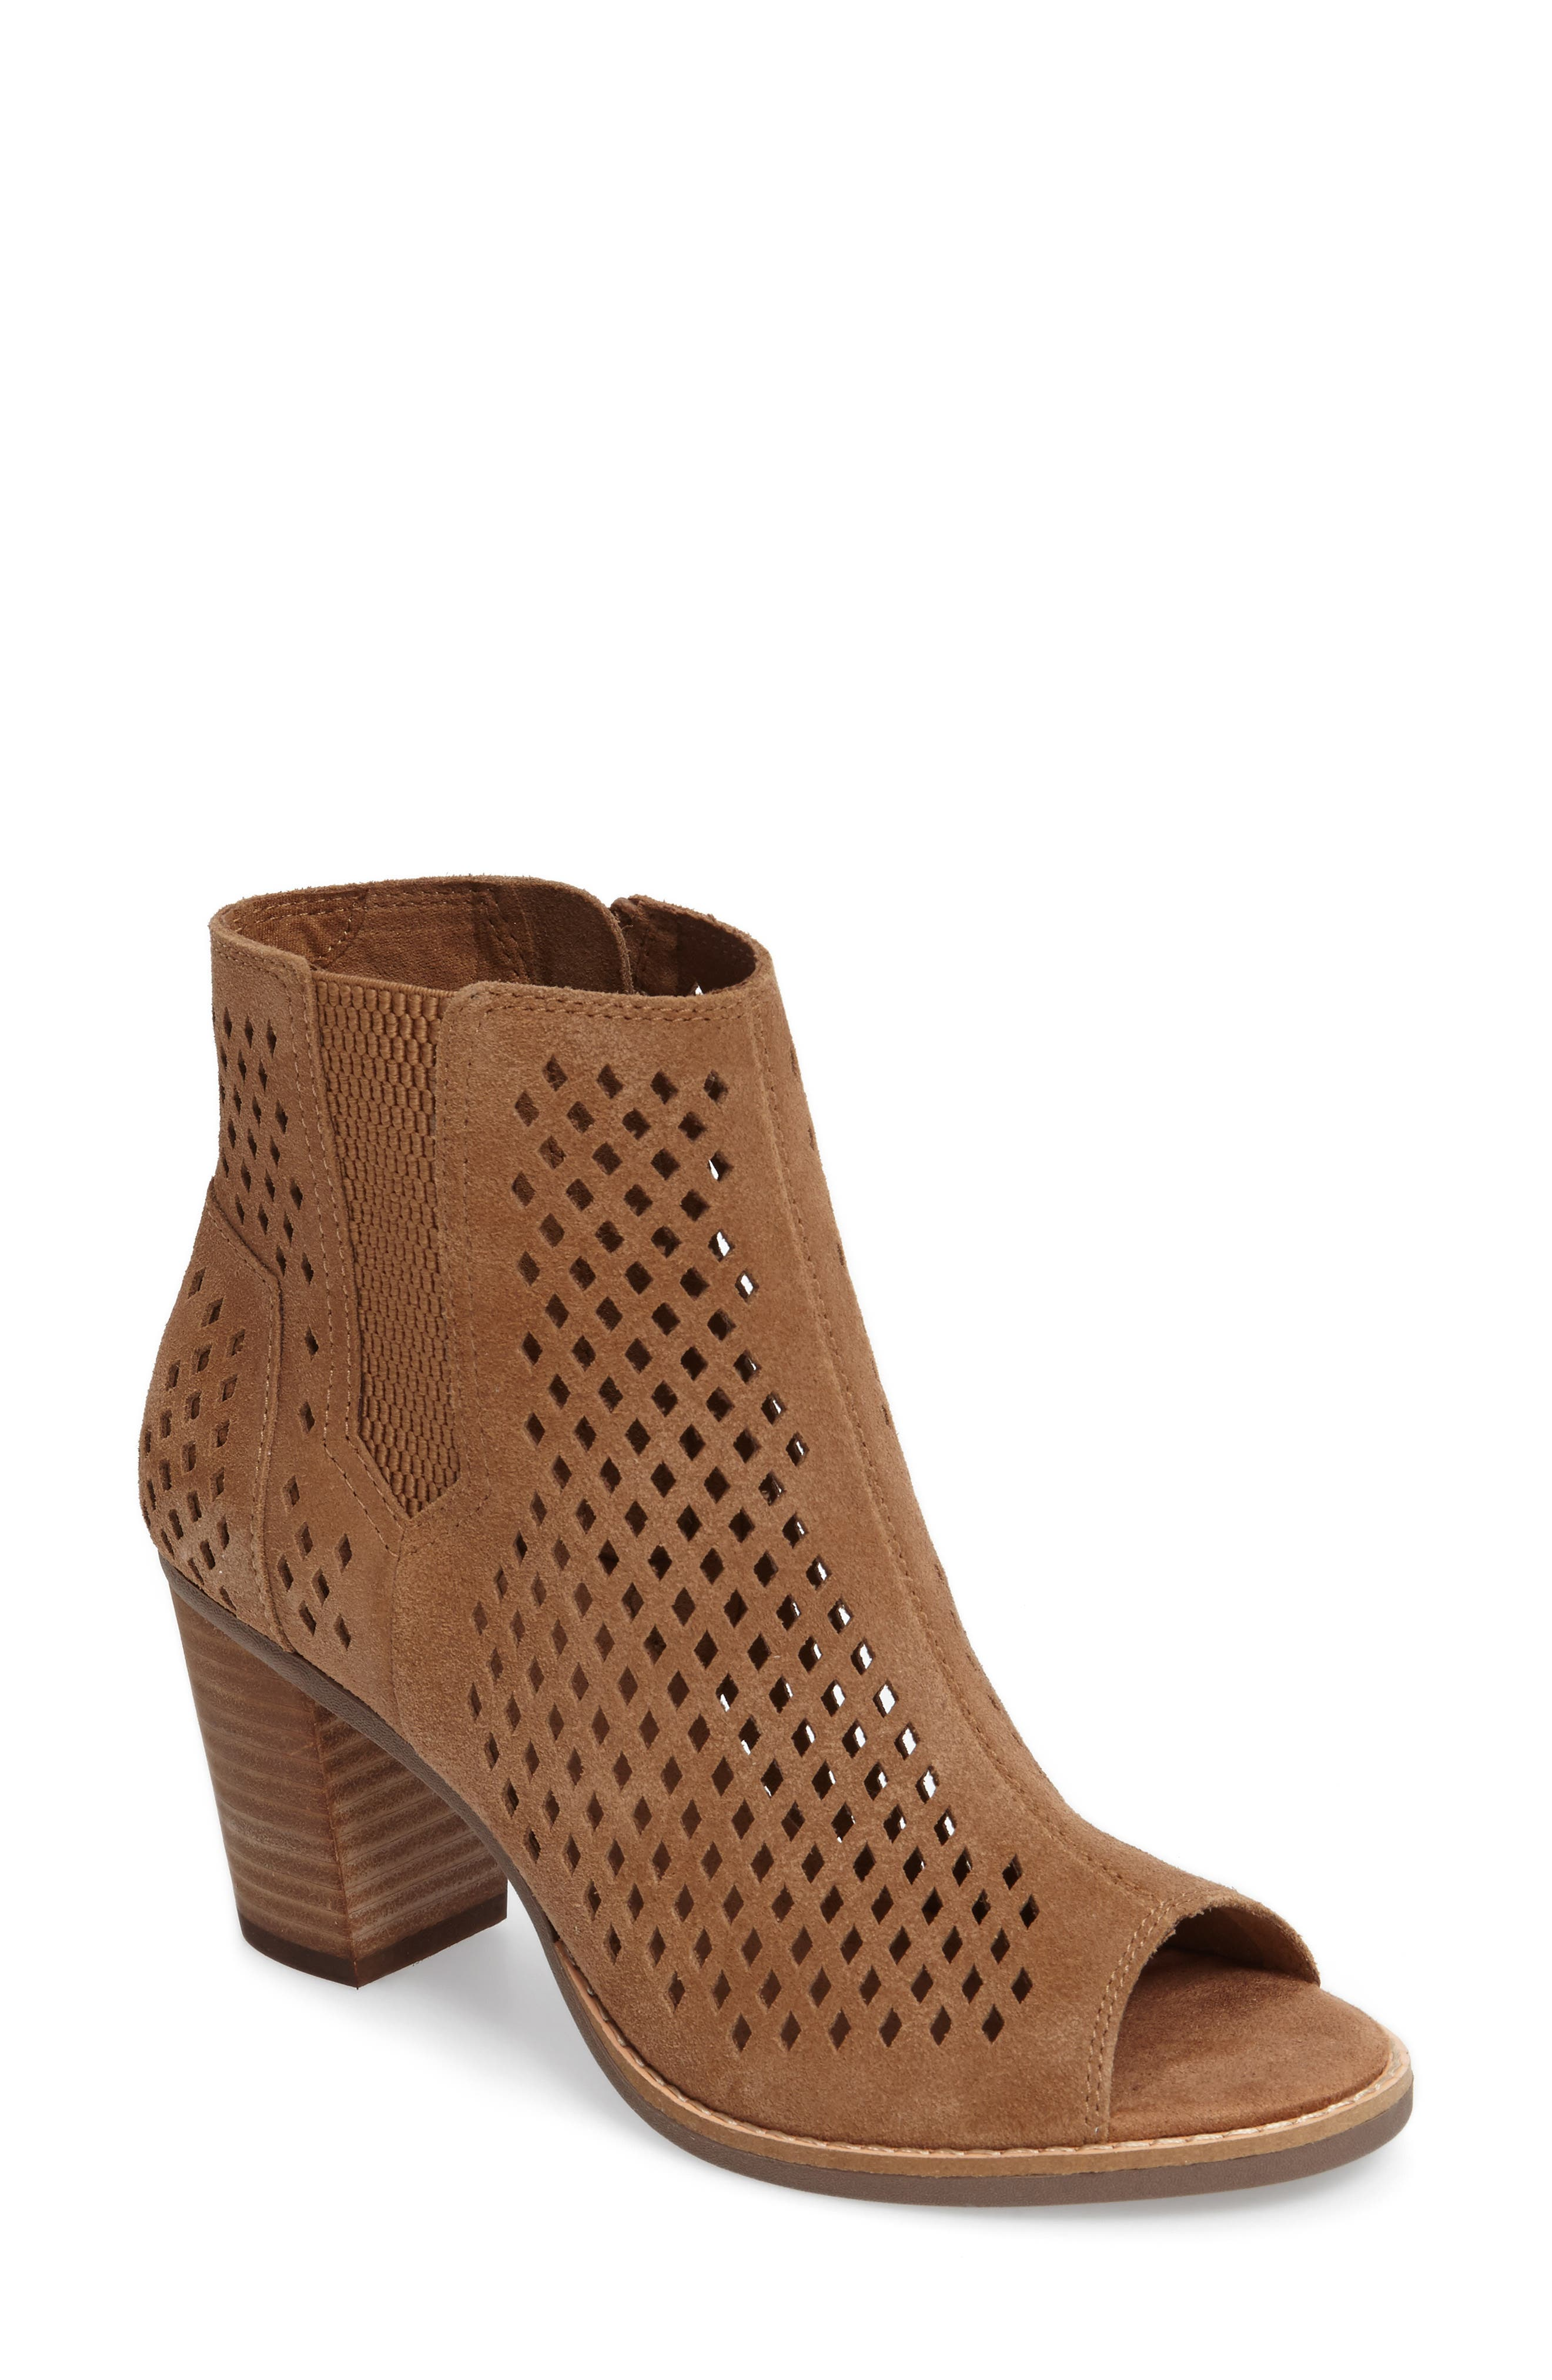 Majorca Peep Toe Bootie,                             Main thumbnail 1, color,                             Toffee Suede